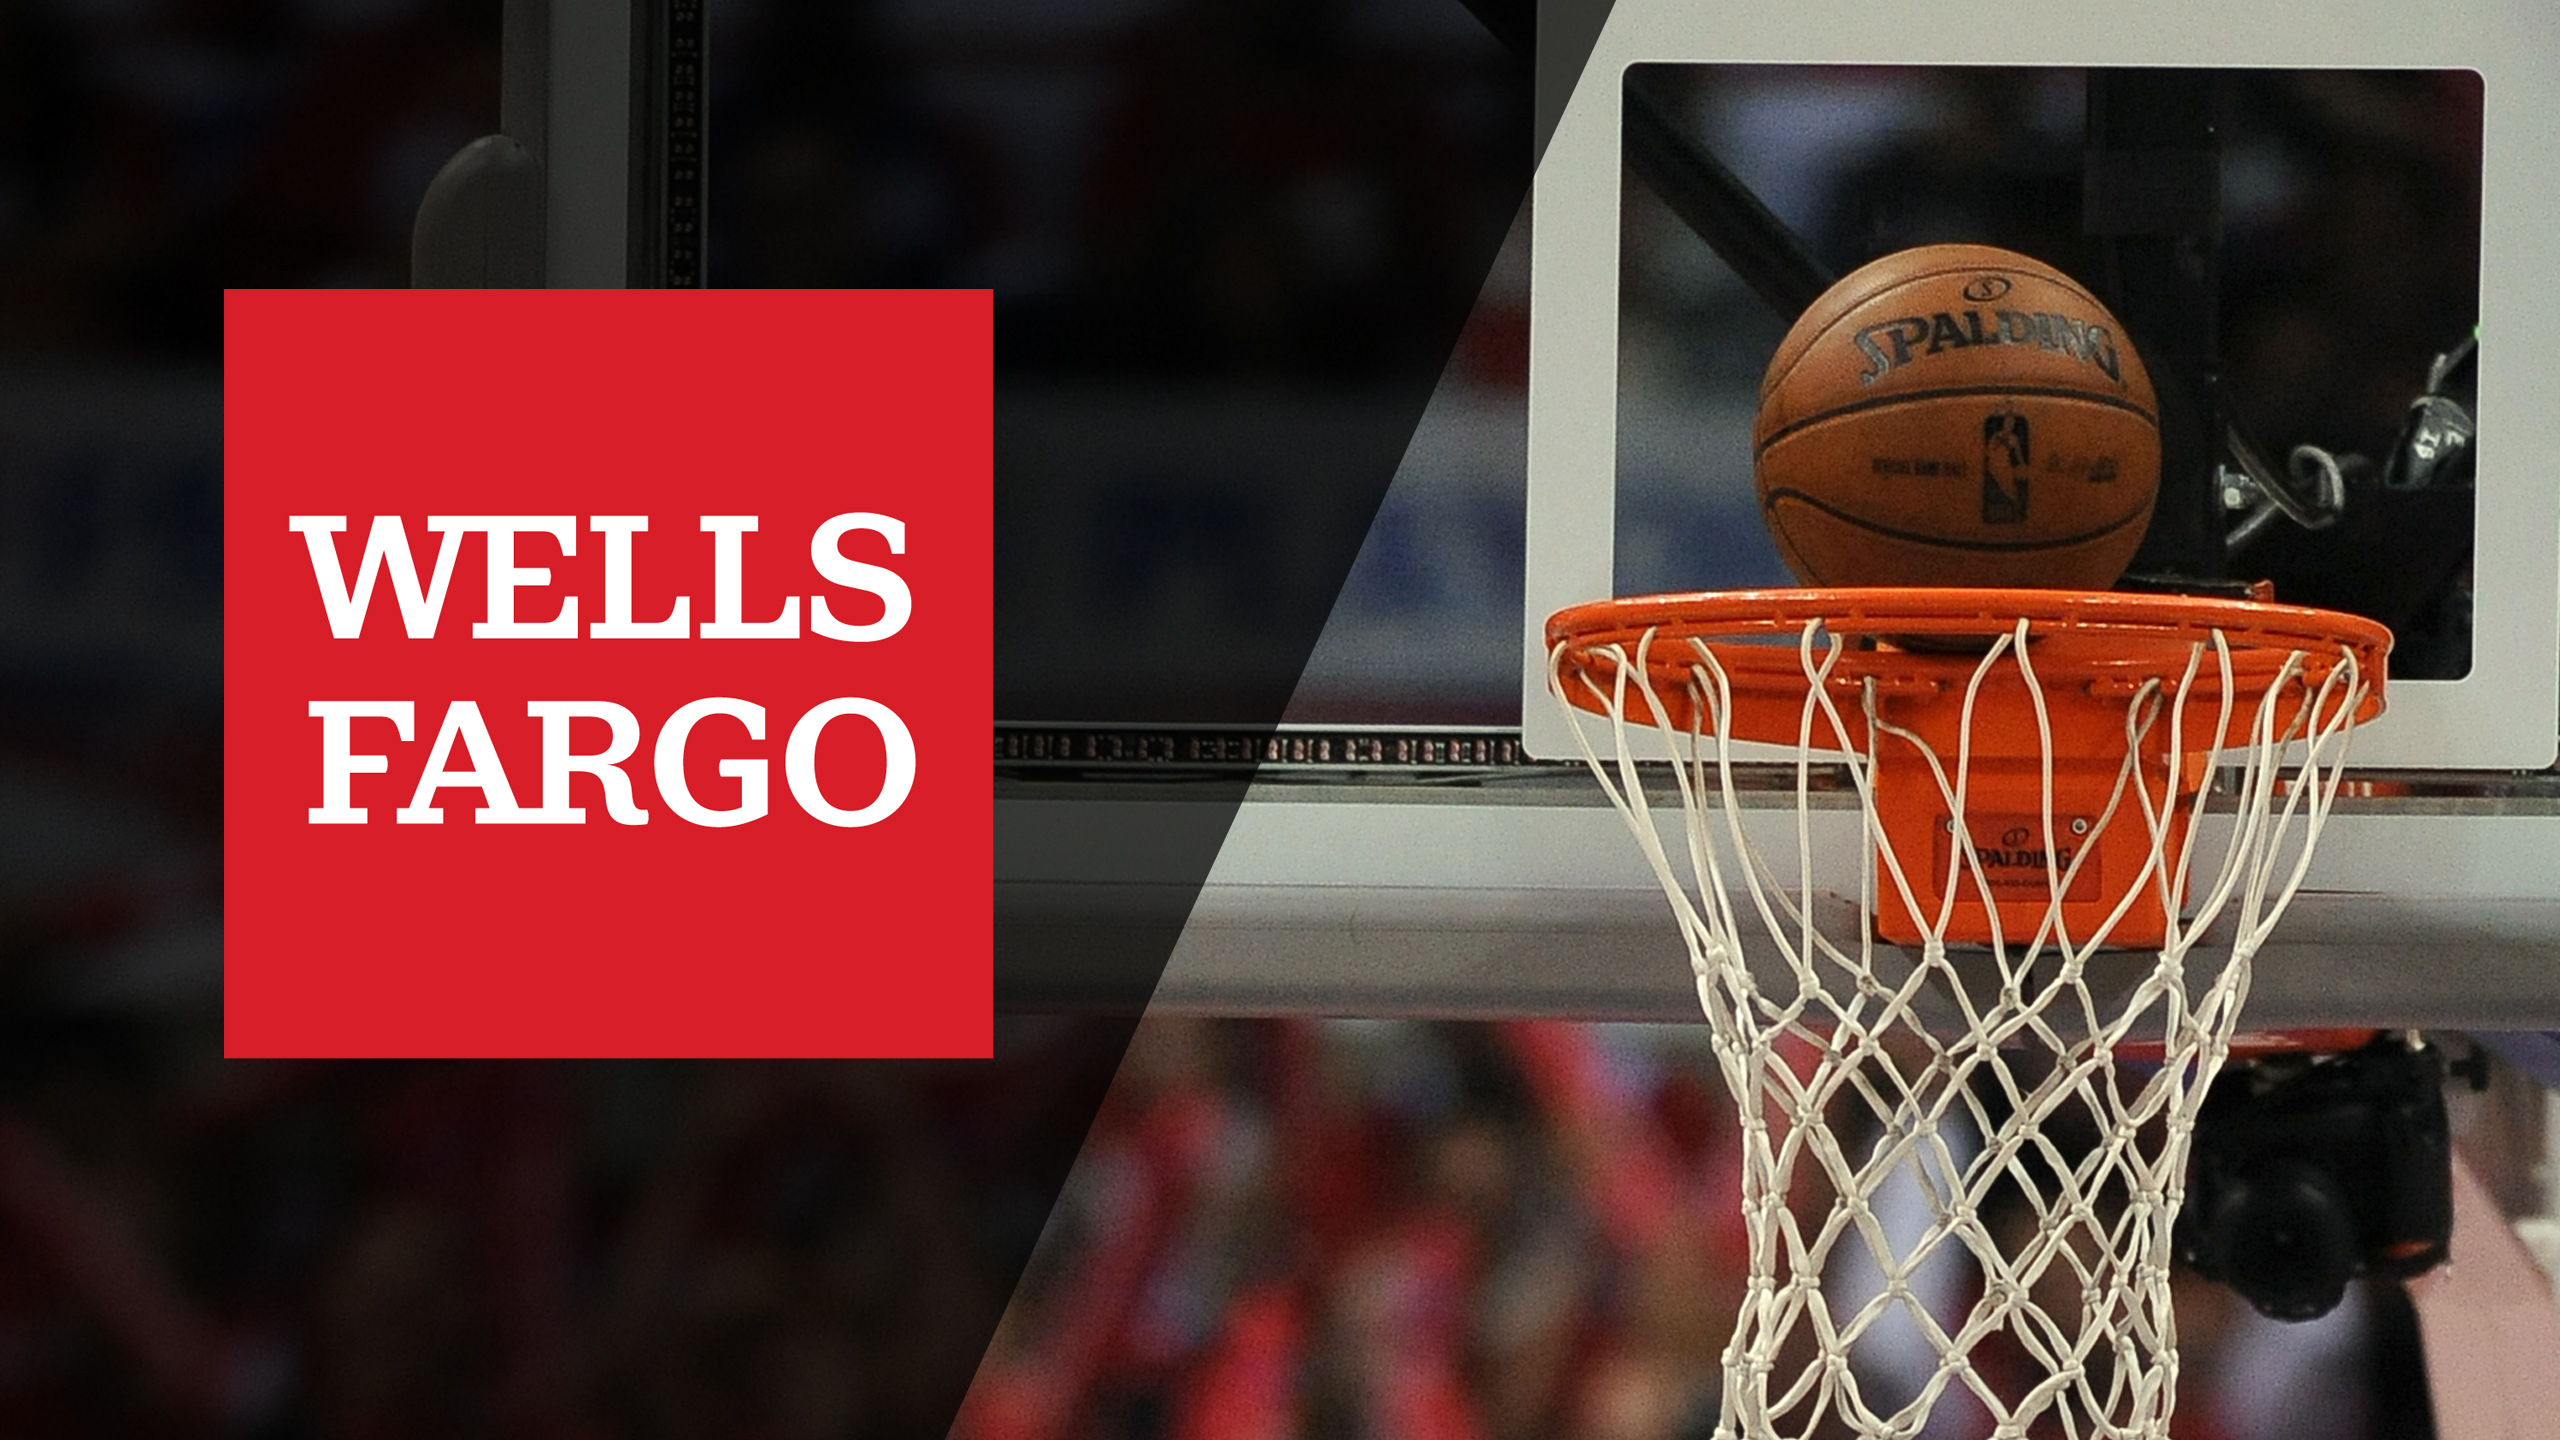 Wells Fargo Above the Rim - Boston Celtics vs. Indiana Pacers (First Round, Game 3)